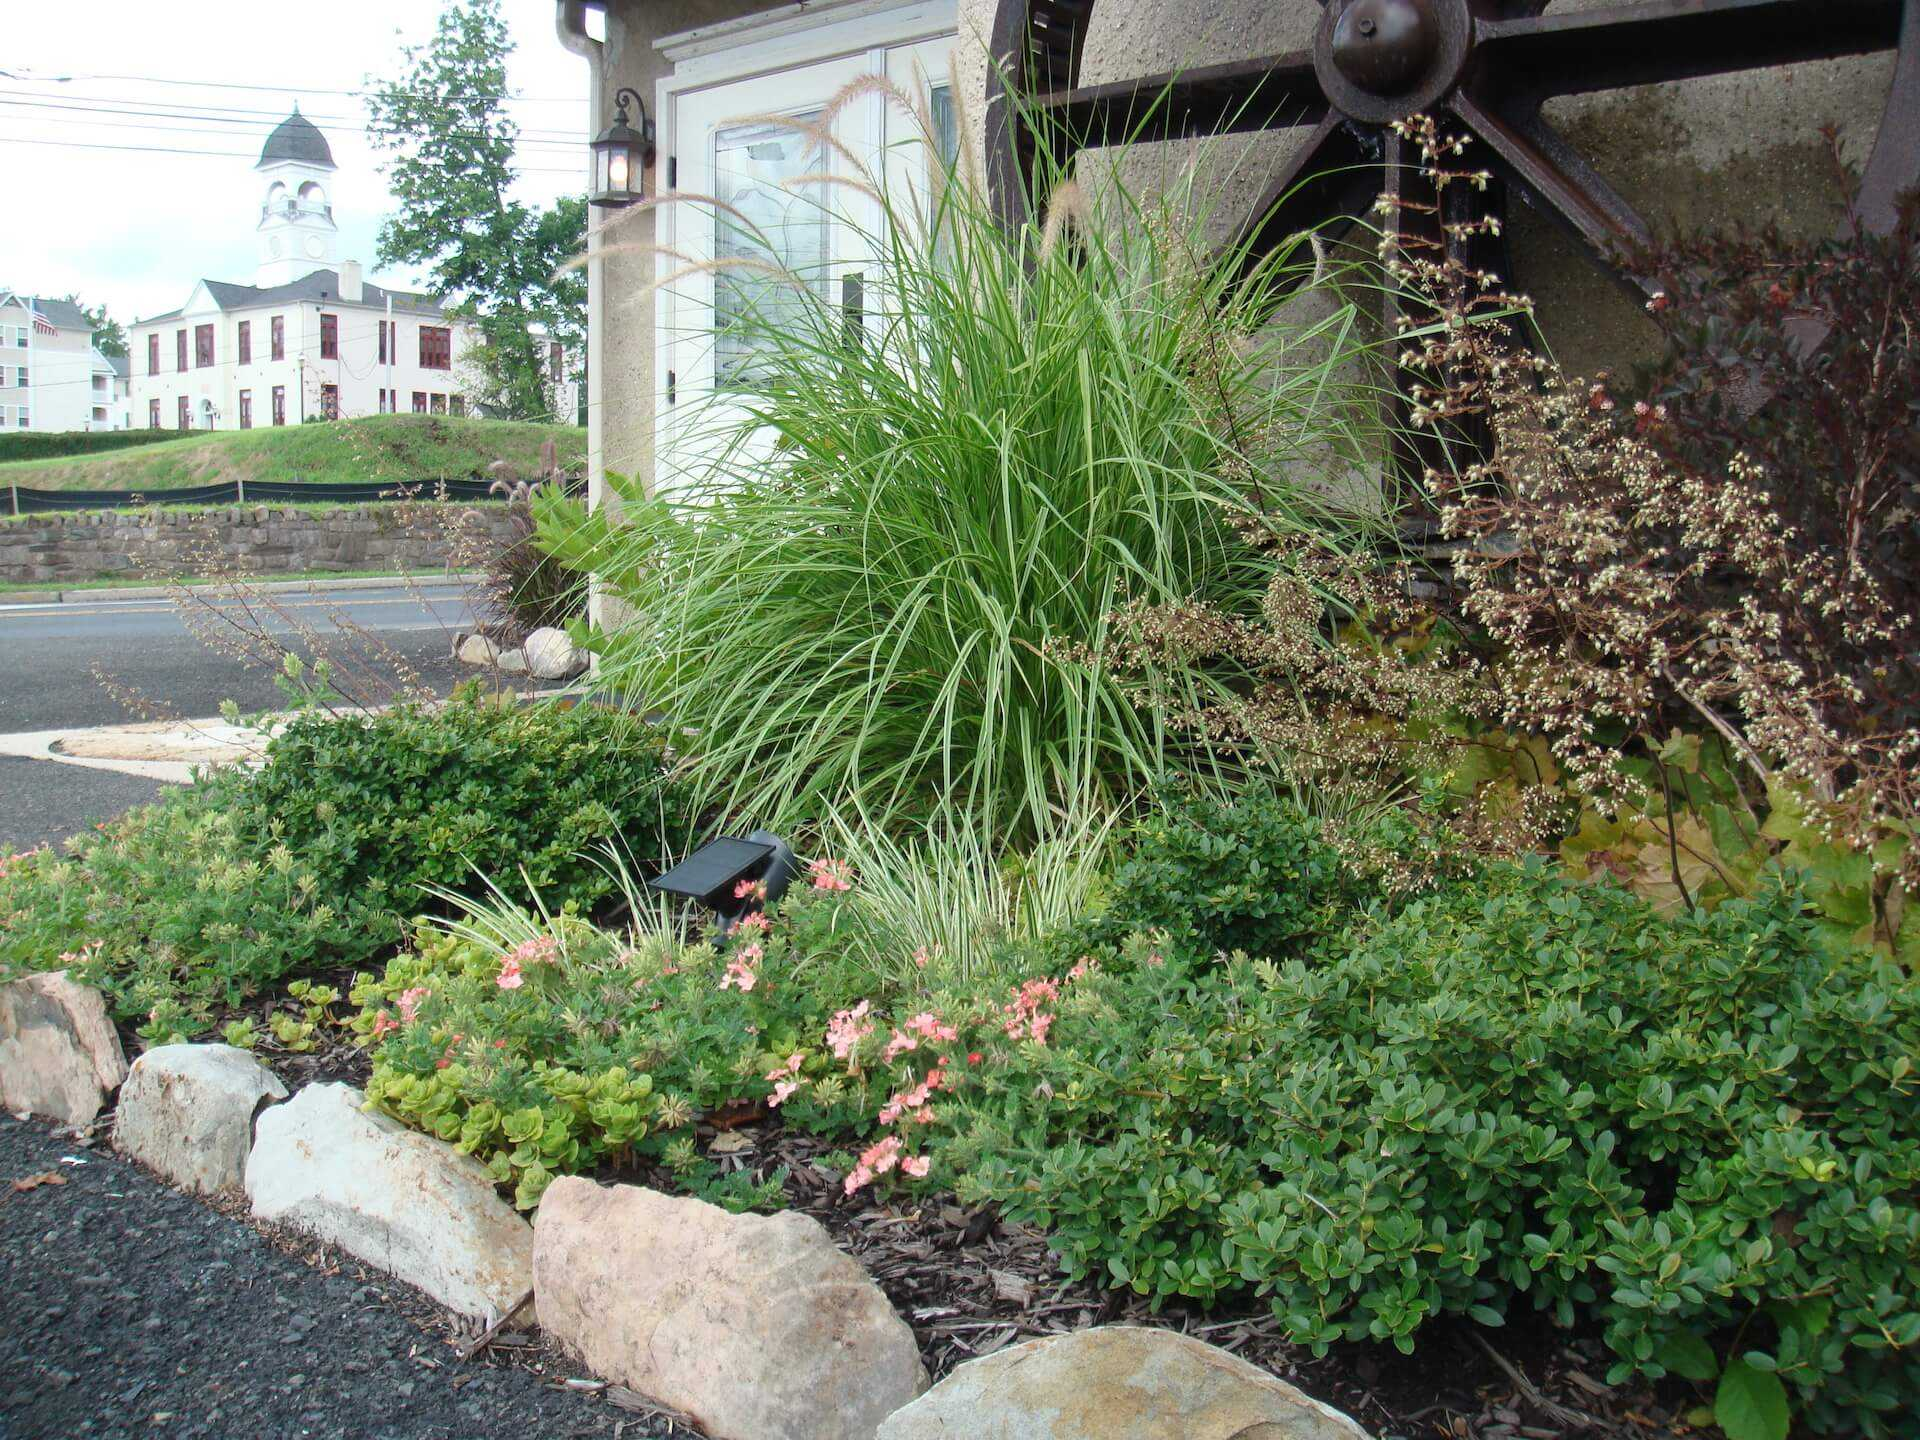 flowerbed in front of old fashioned wheel